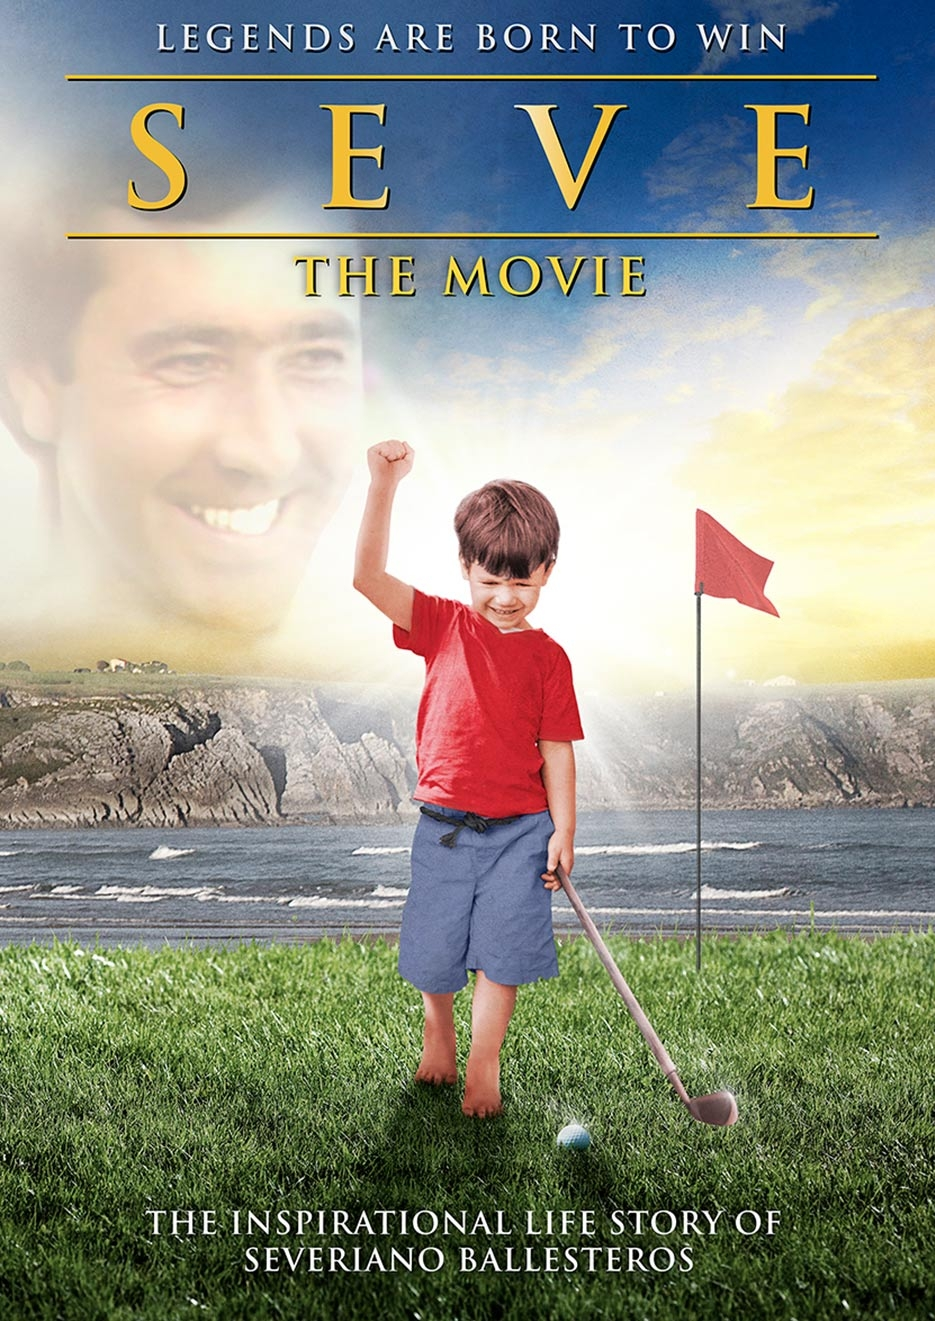 Seve the Movie poster, copyright in handen van productiestudio en/of distributeur